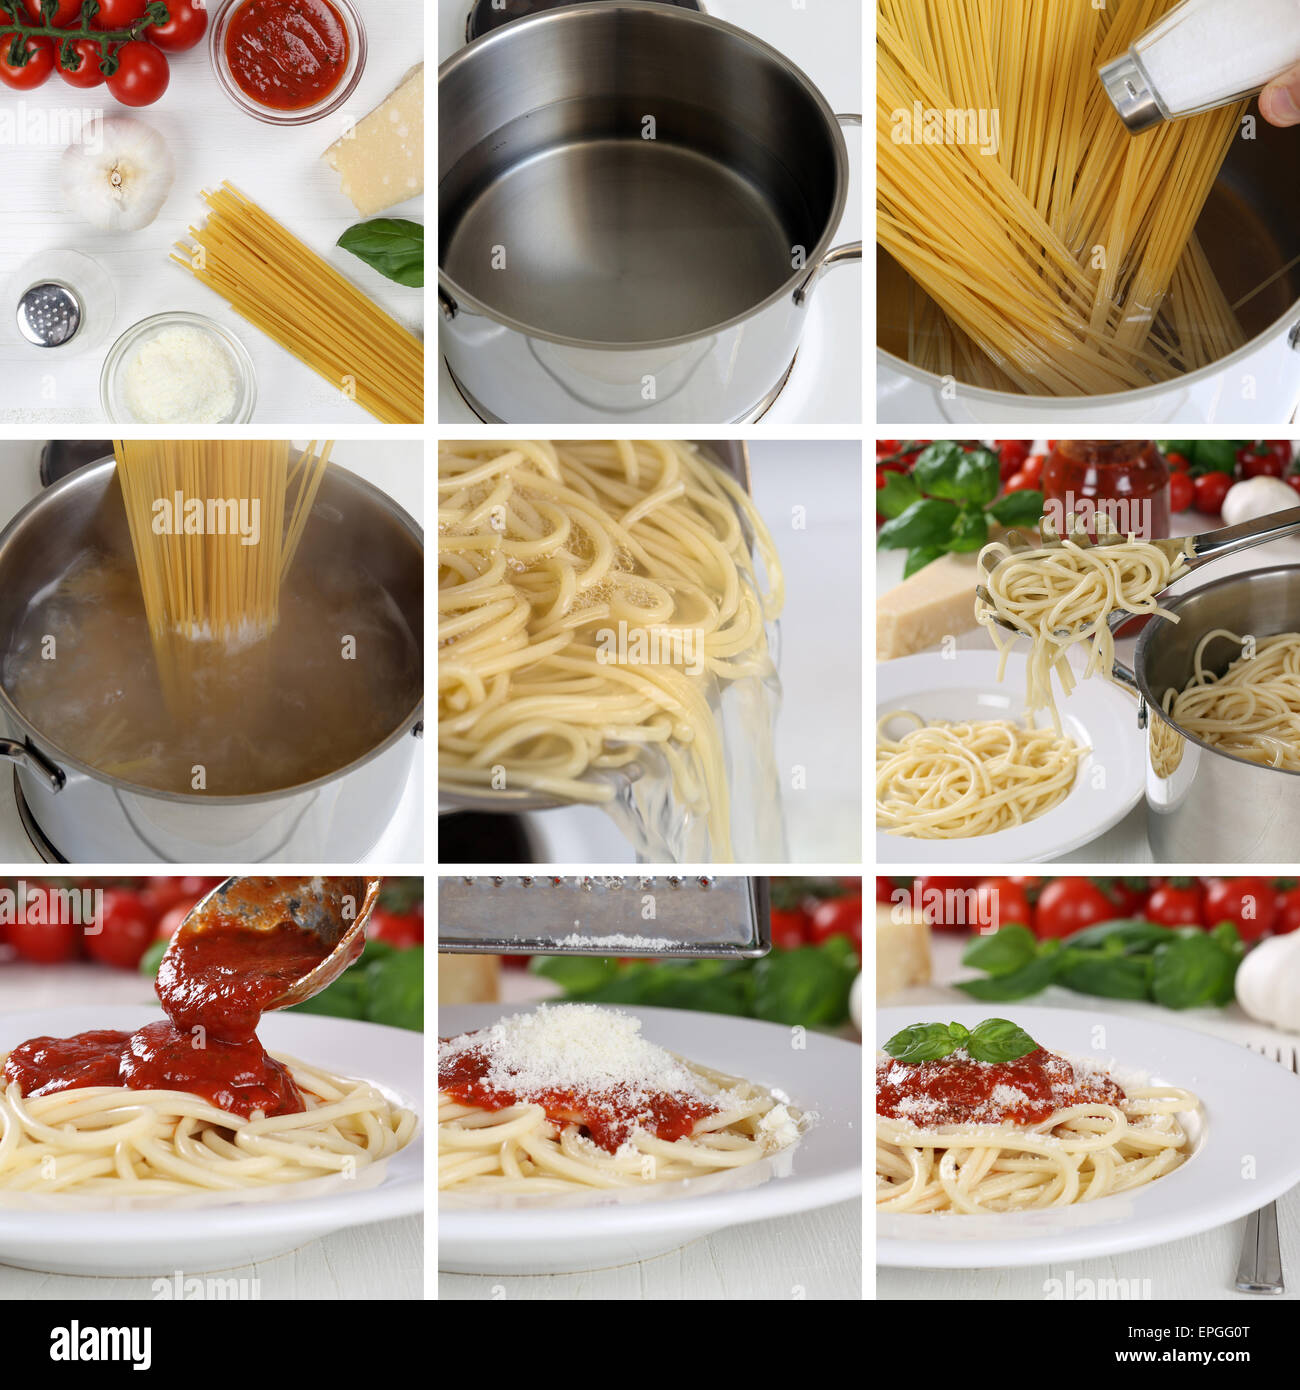 spaghetti nudeln pasta mit tomaten sauce und basilikum kochen stock photo royalty free image. Black Bedroom Furniture Sets. Home Design Ideas